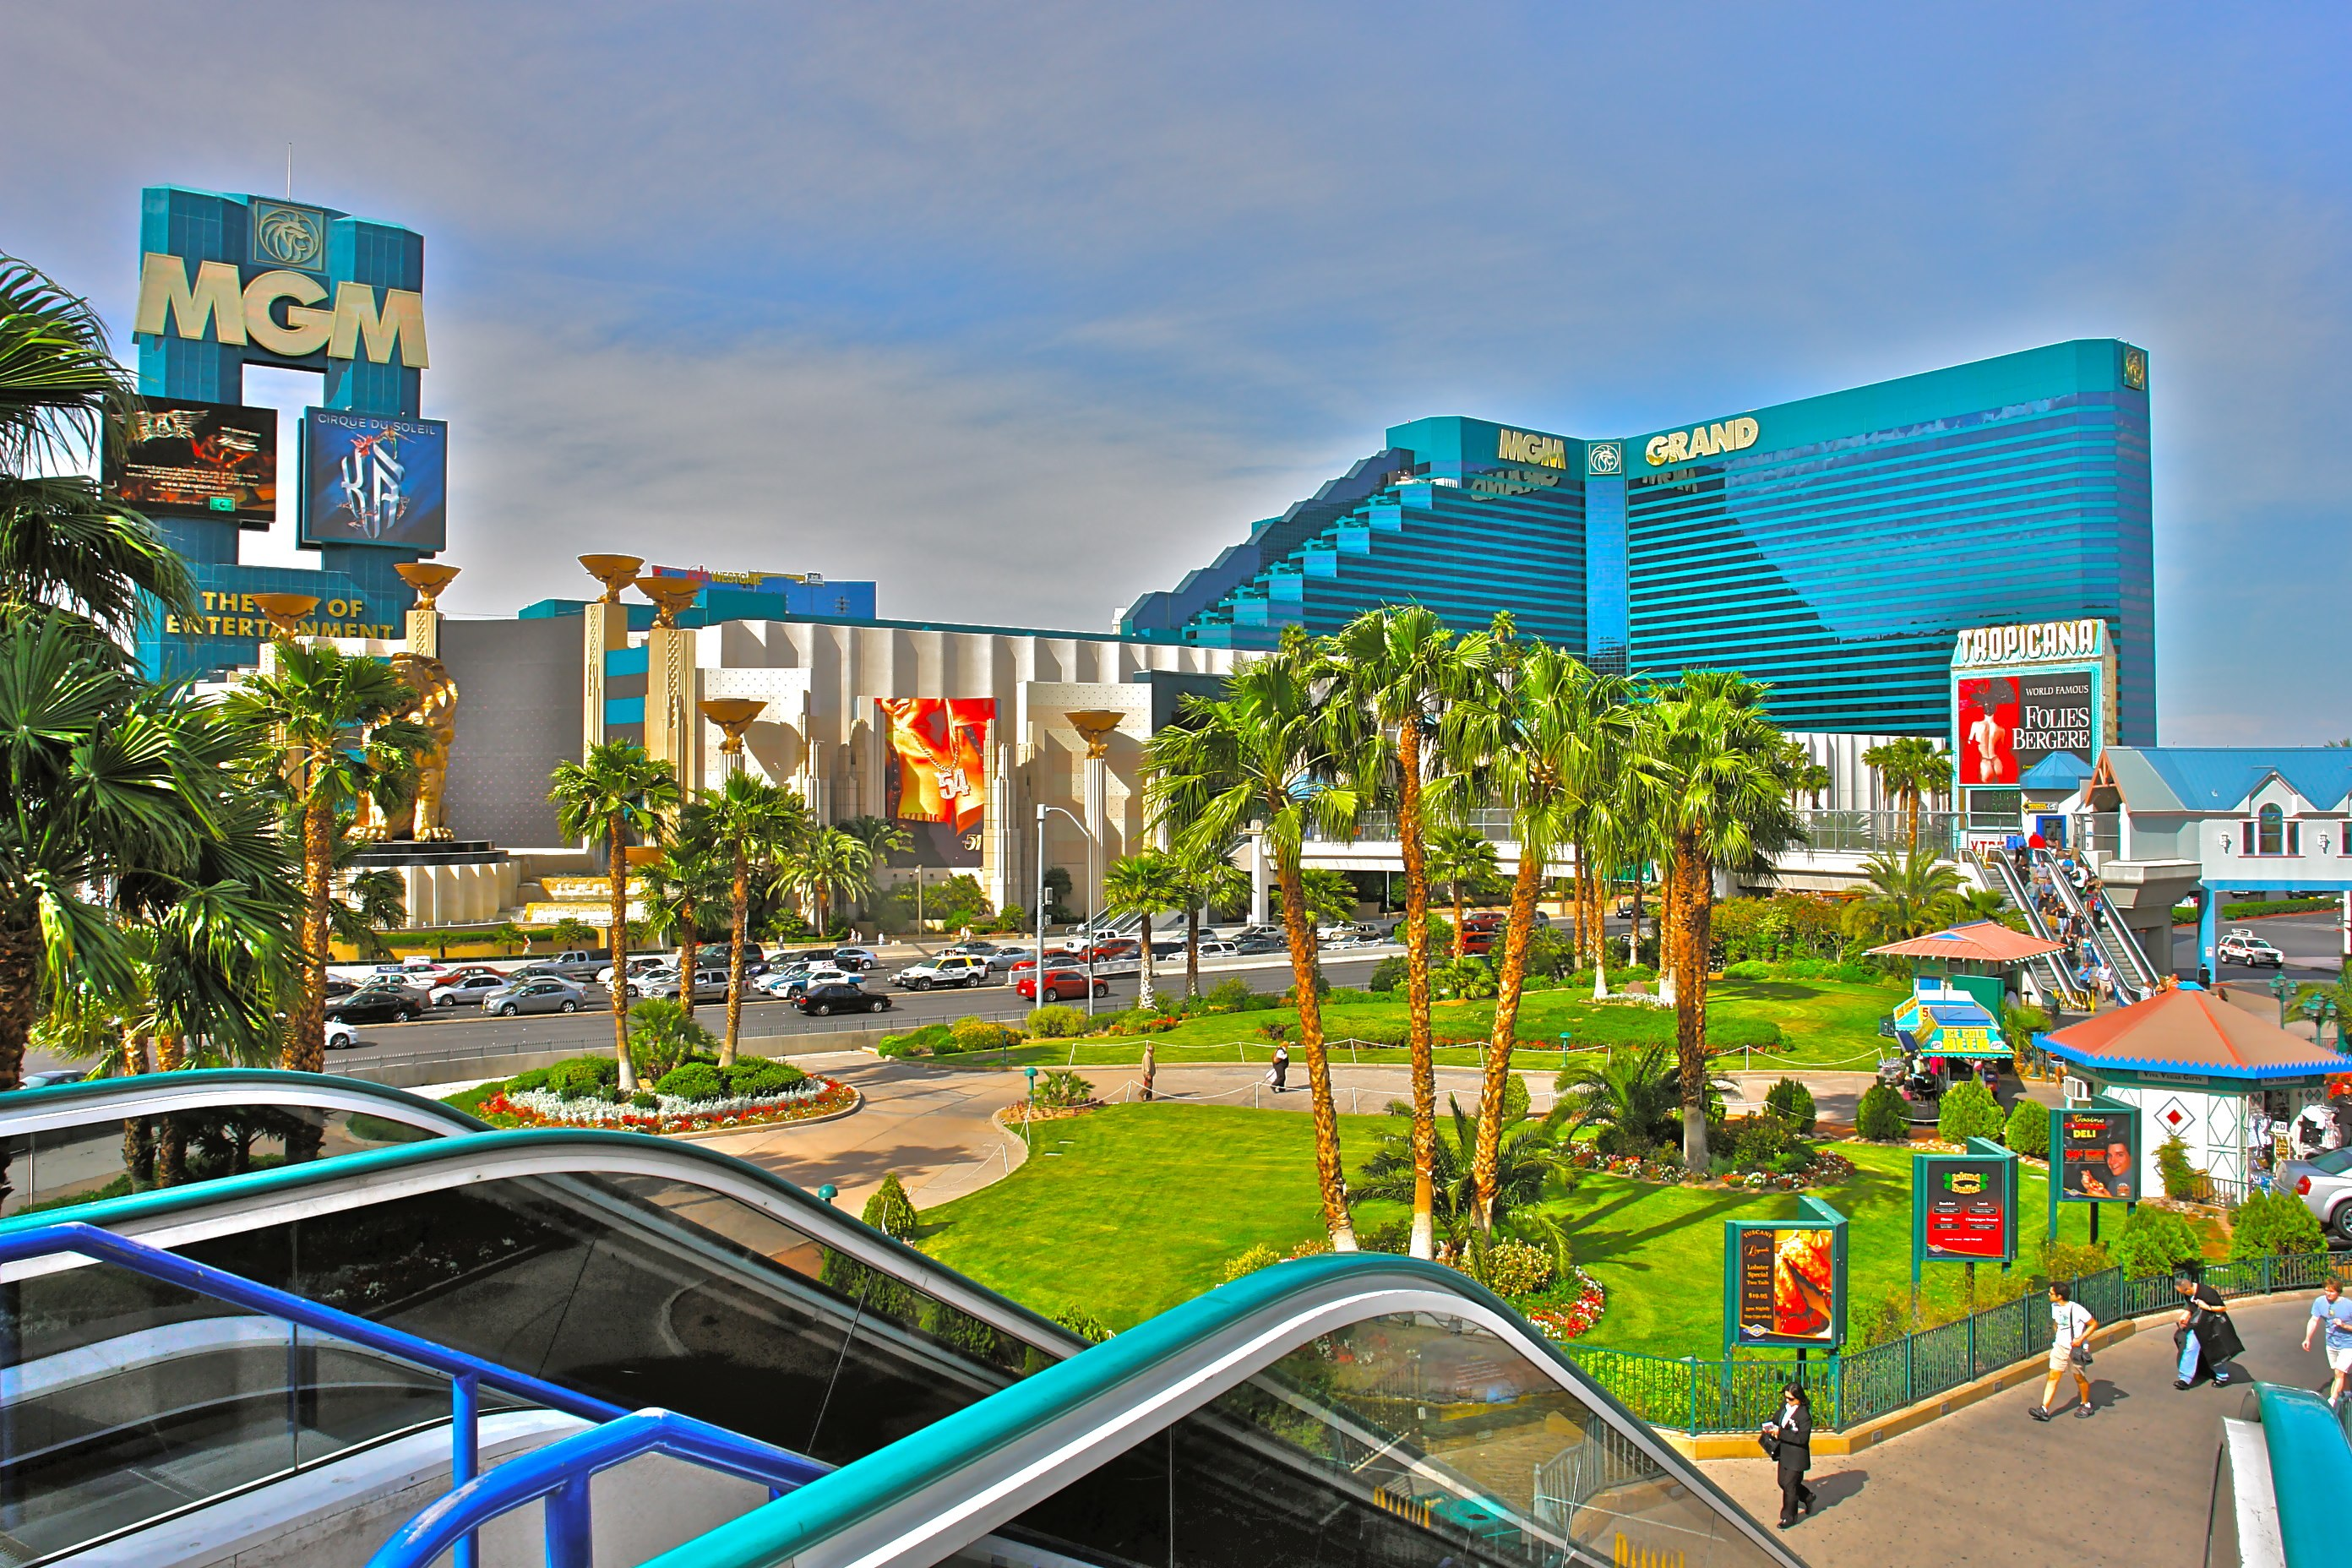 mgm grand las vegas casino